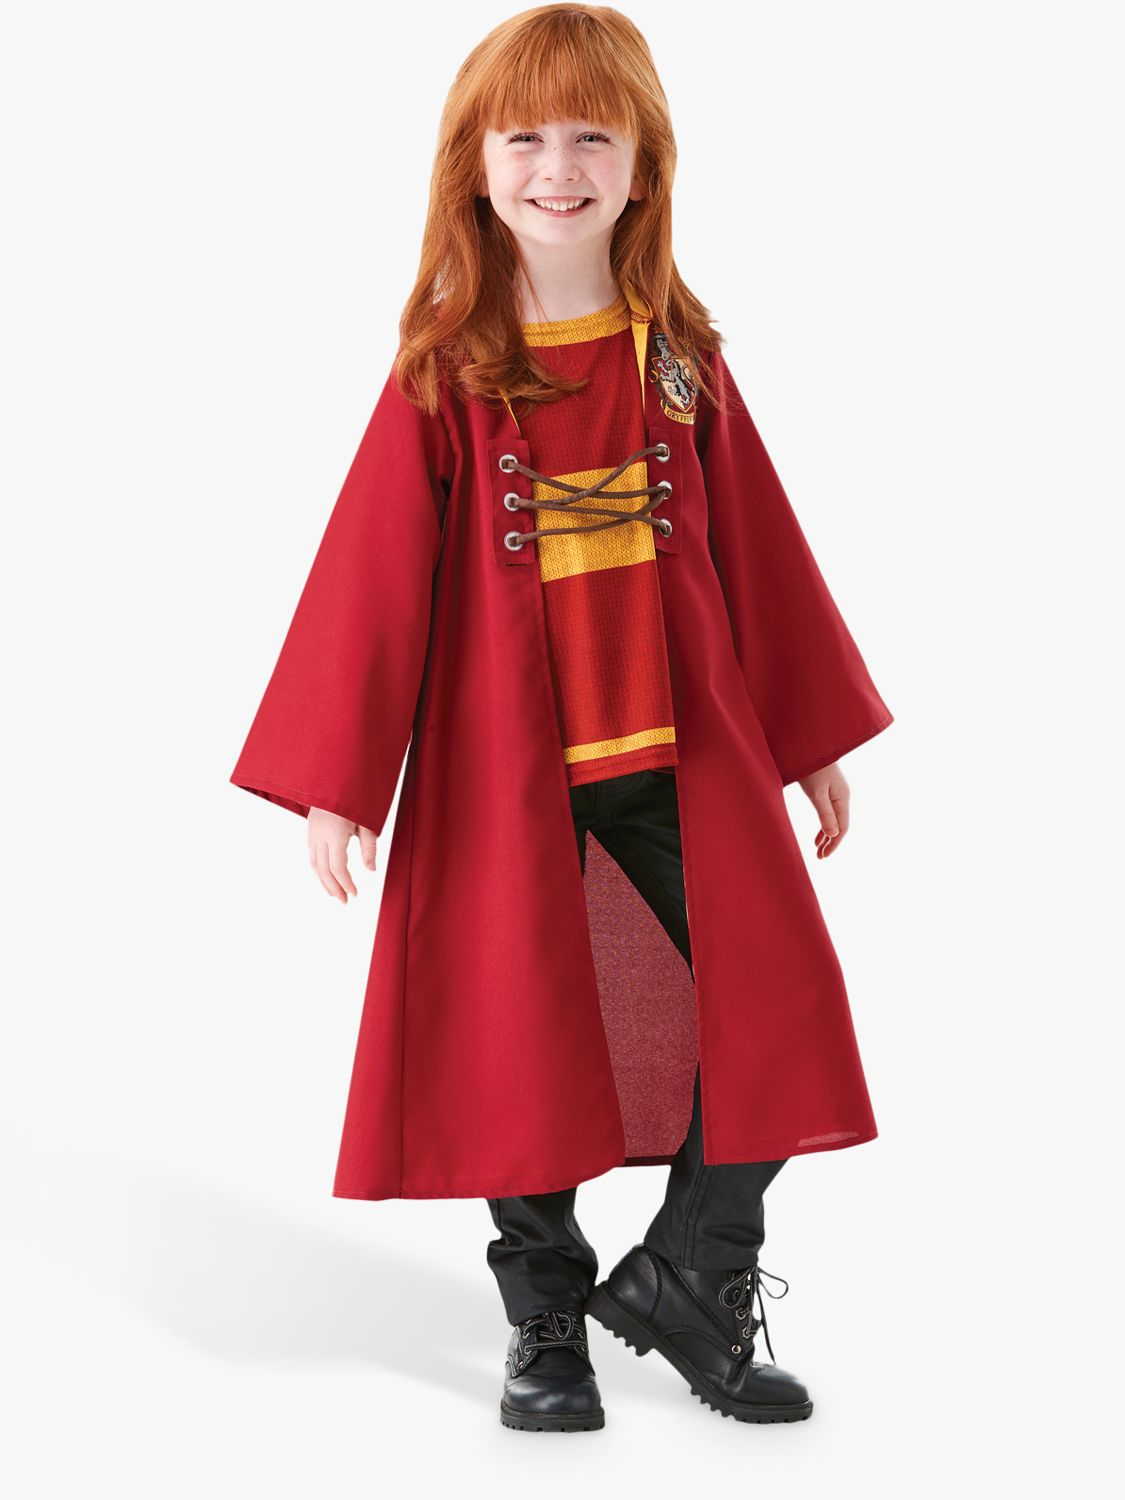 Harry Potter Quidditch Robe Children S Costume 5 6 Years At John Lewis Partners